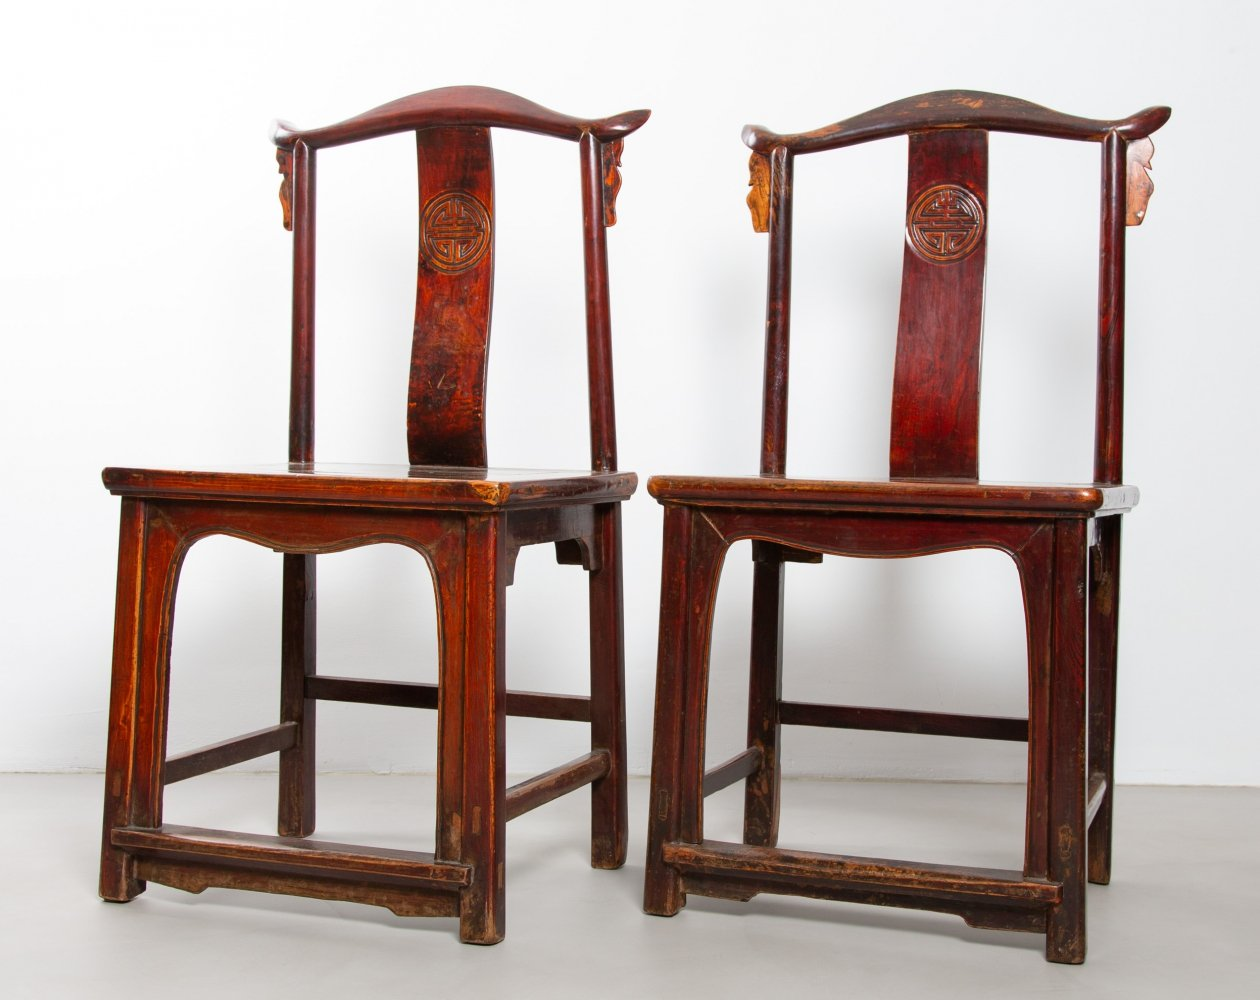 Set of two very old Chinese chairs made of hard wood, 1920s